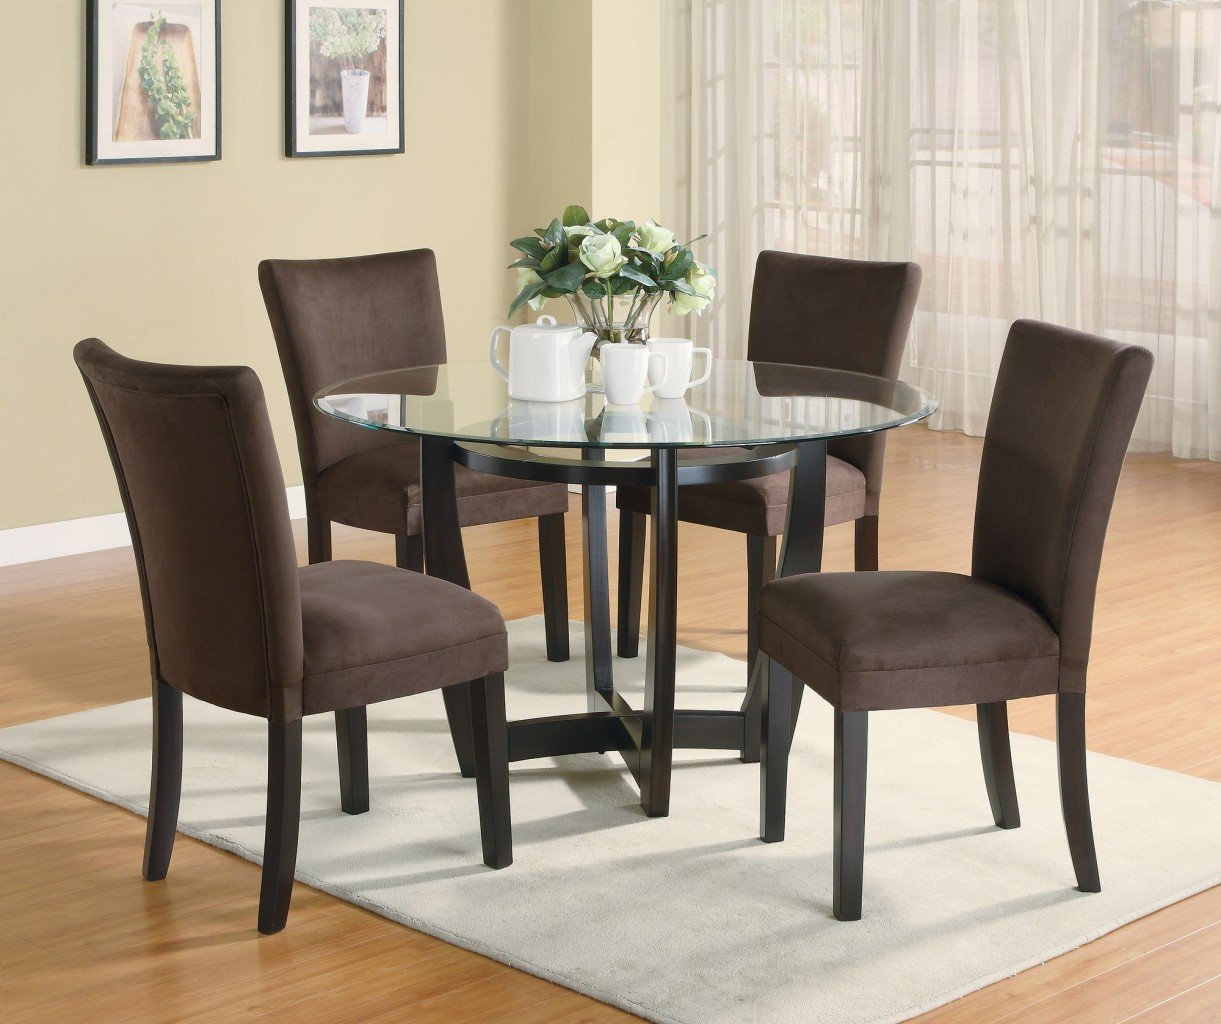 Cheap dining room table sets home furniture design - Images of dining room sets ...